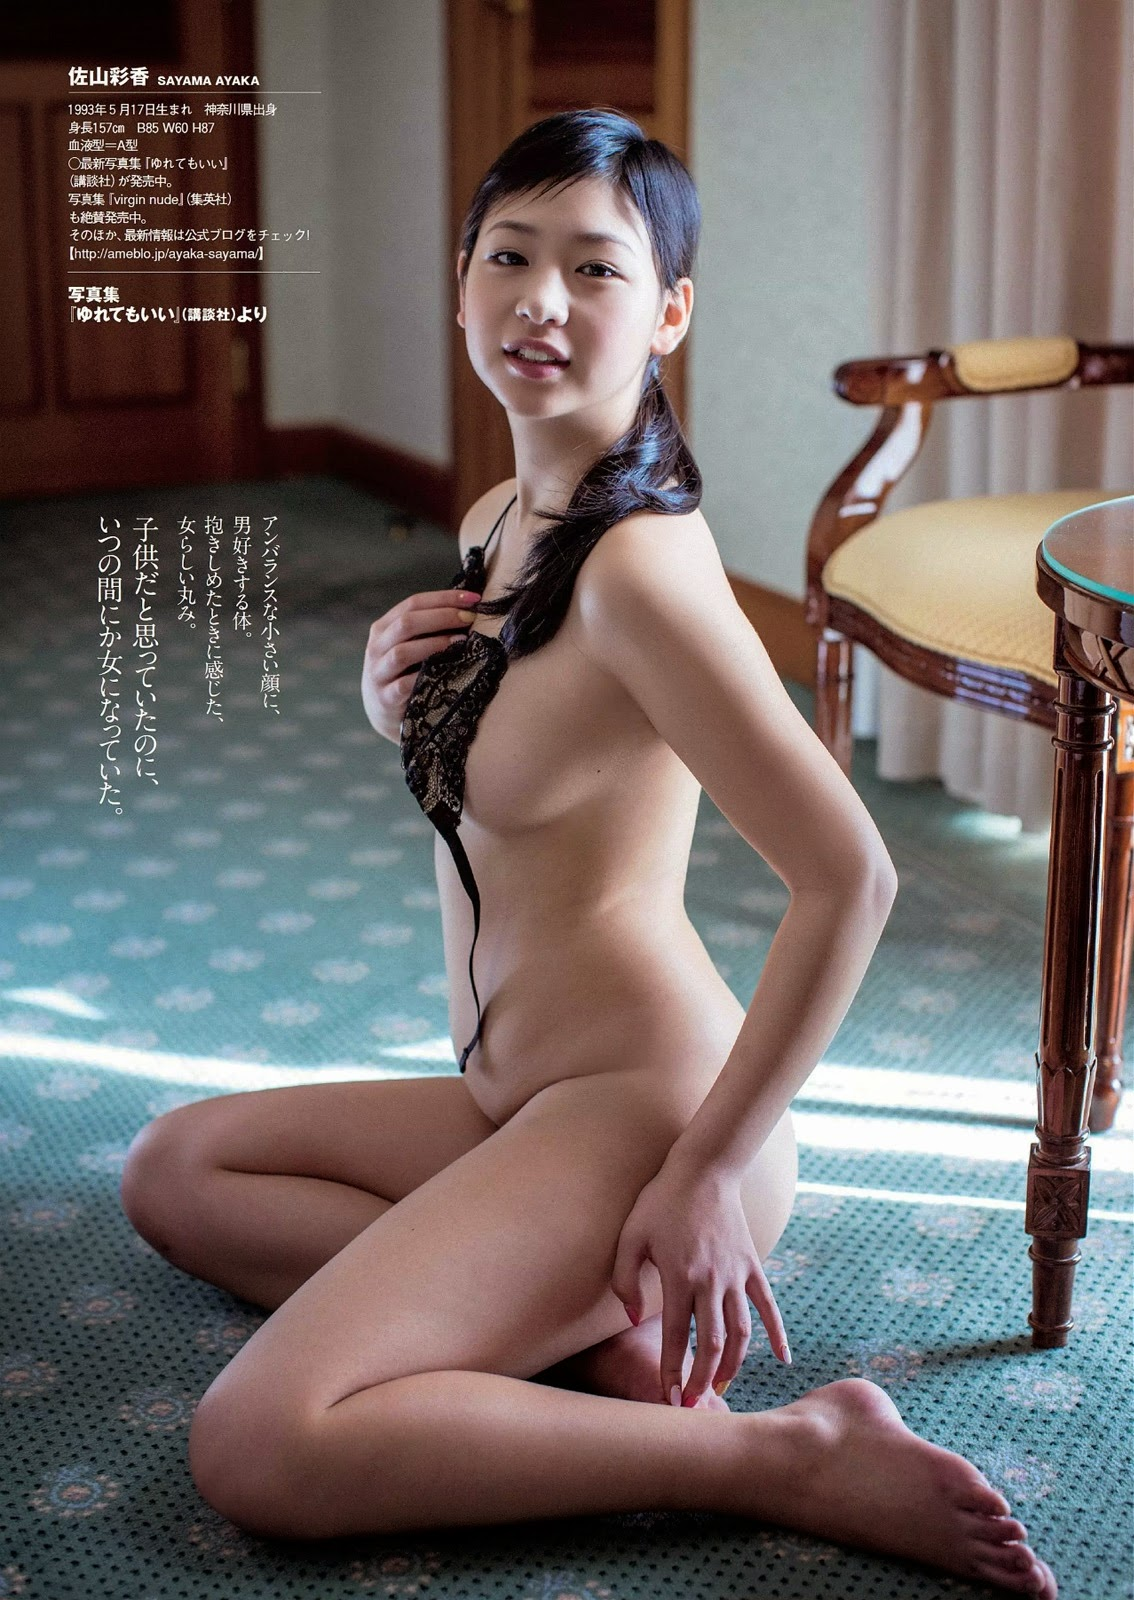 hot asian girls nude photos 04